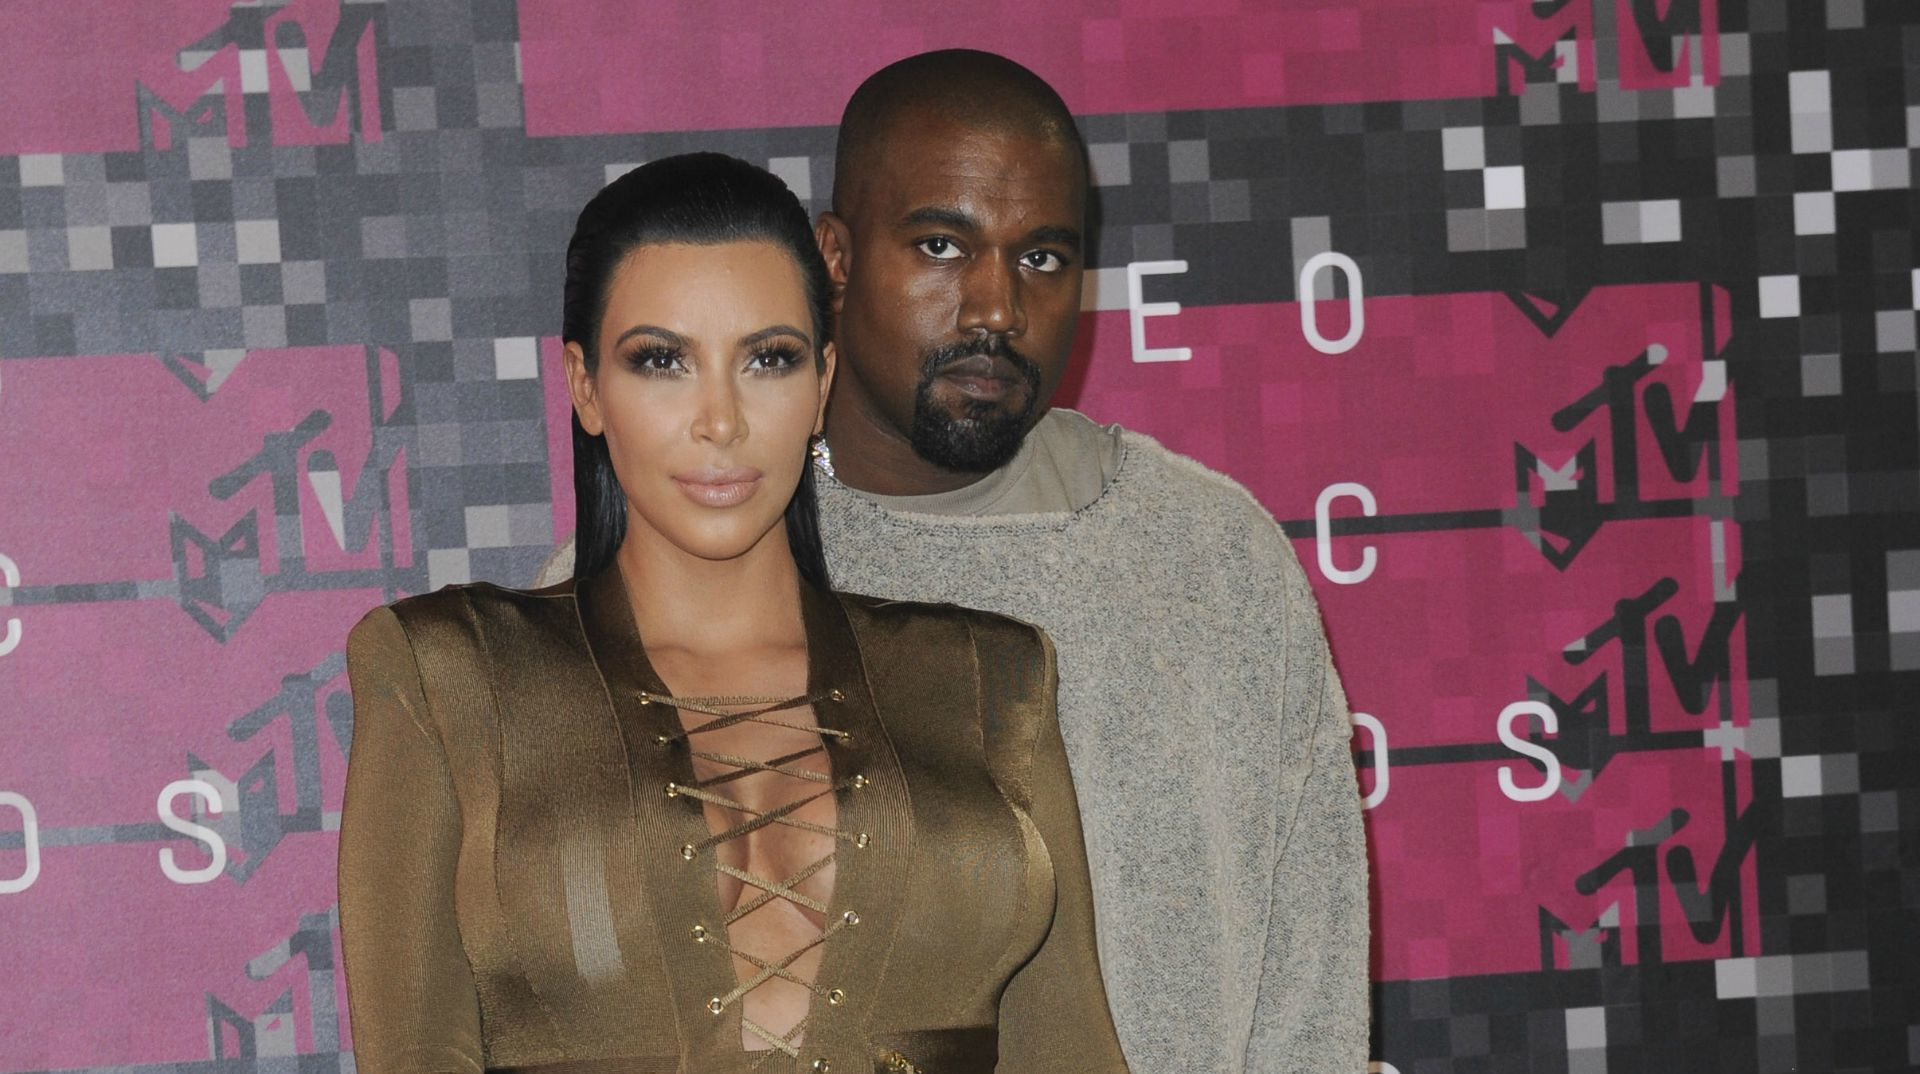 f5d3aac9ff71 Kim Kardashian s raunchy shoot has fans concerned for Kanye West (PHOTOS)